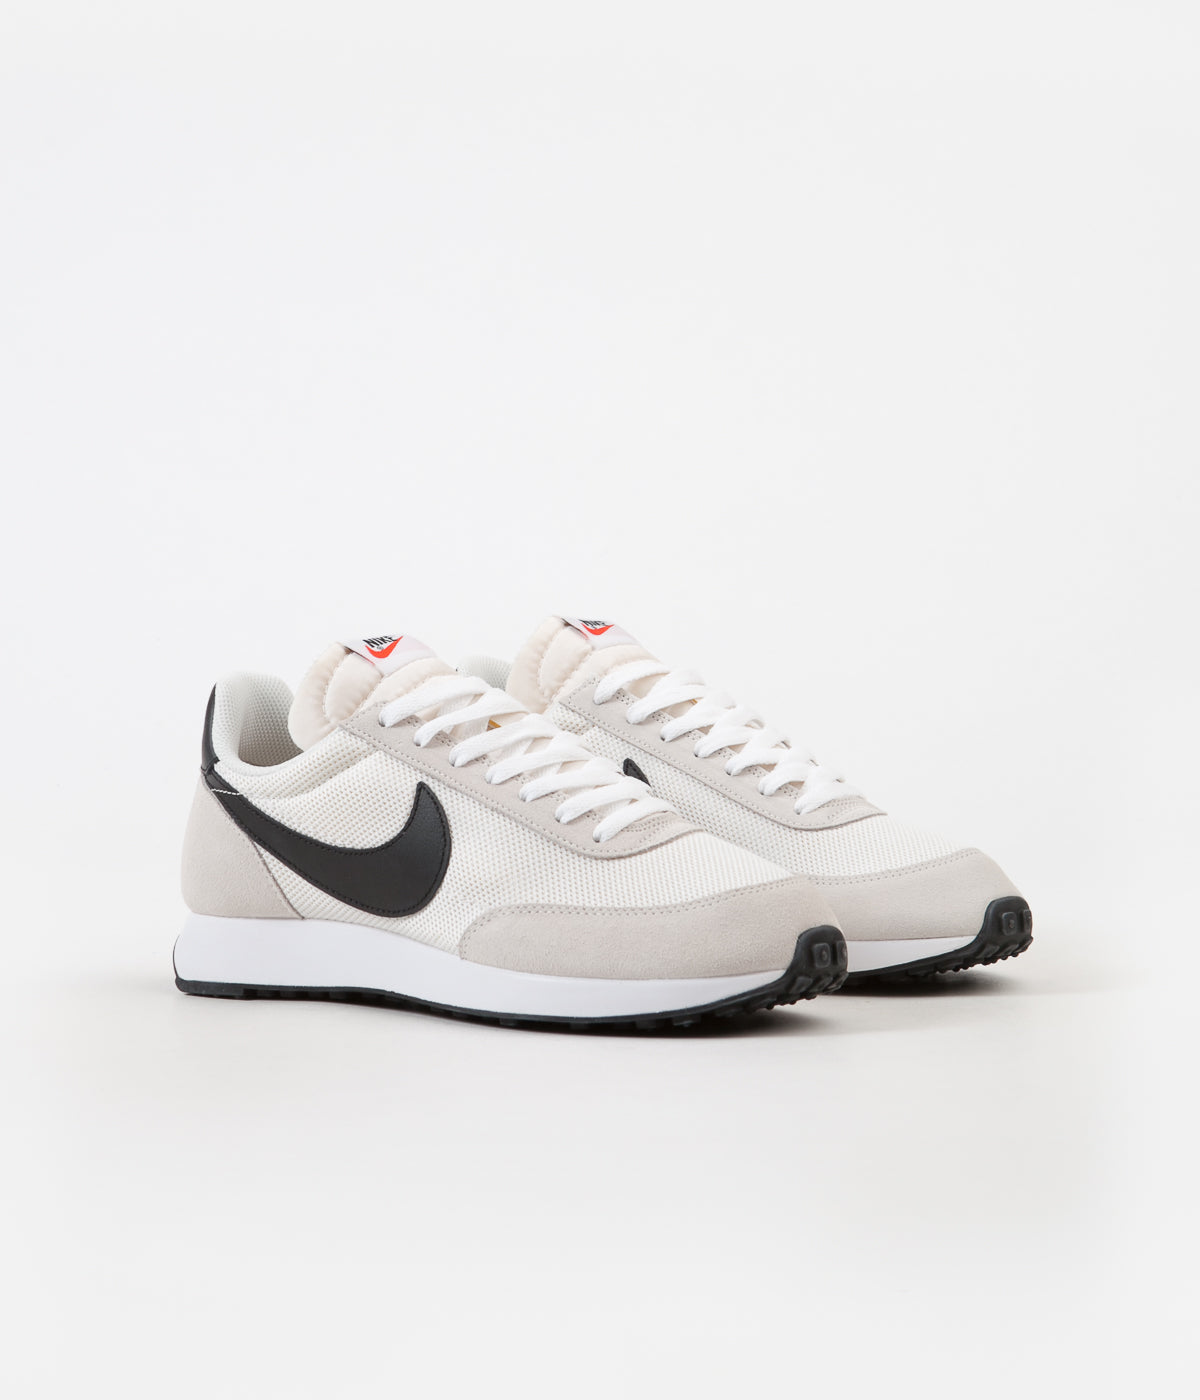 nike air tailwind 79 white phantom